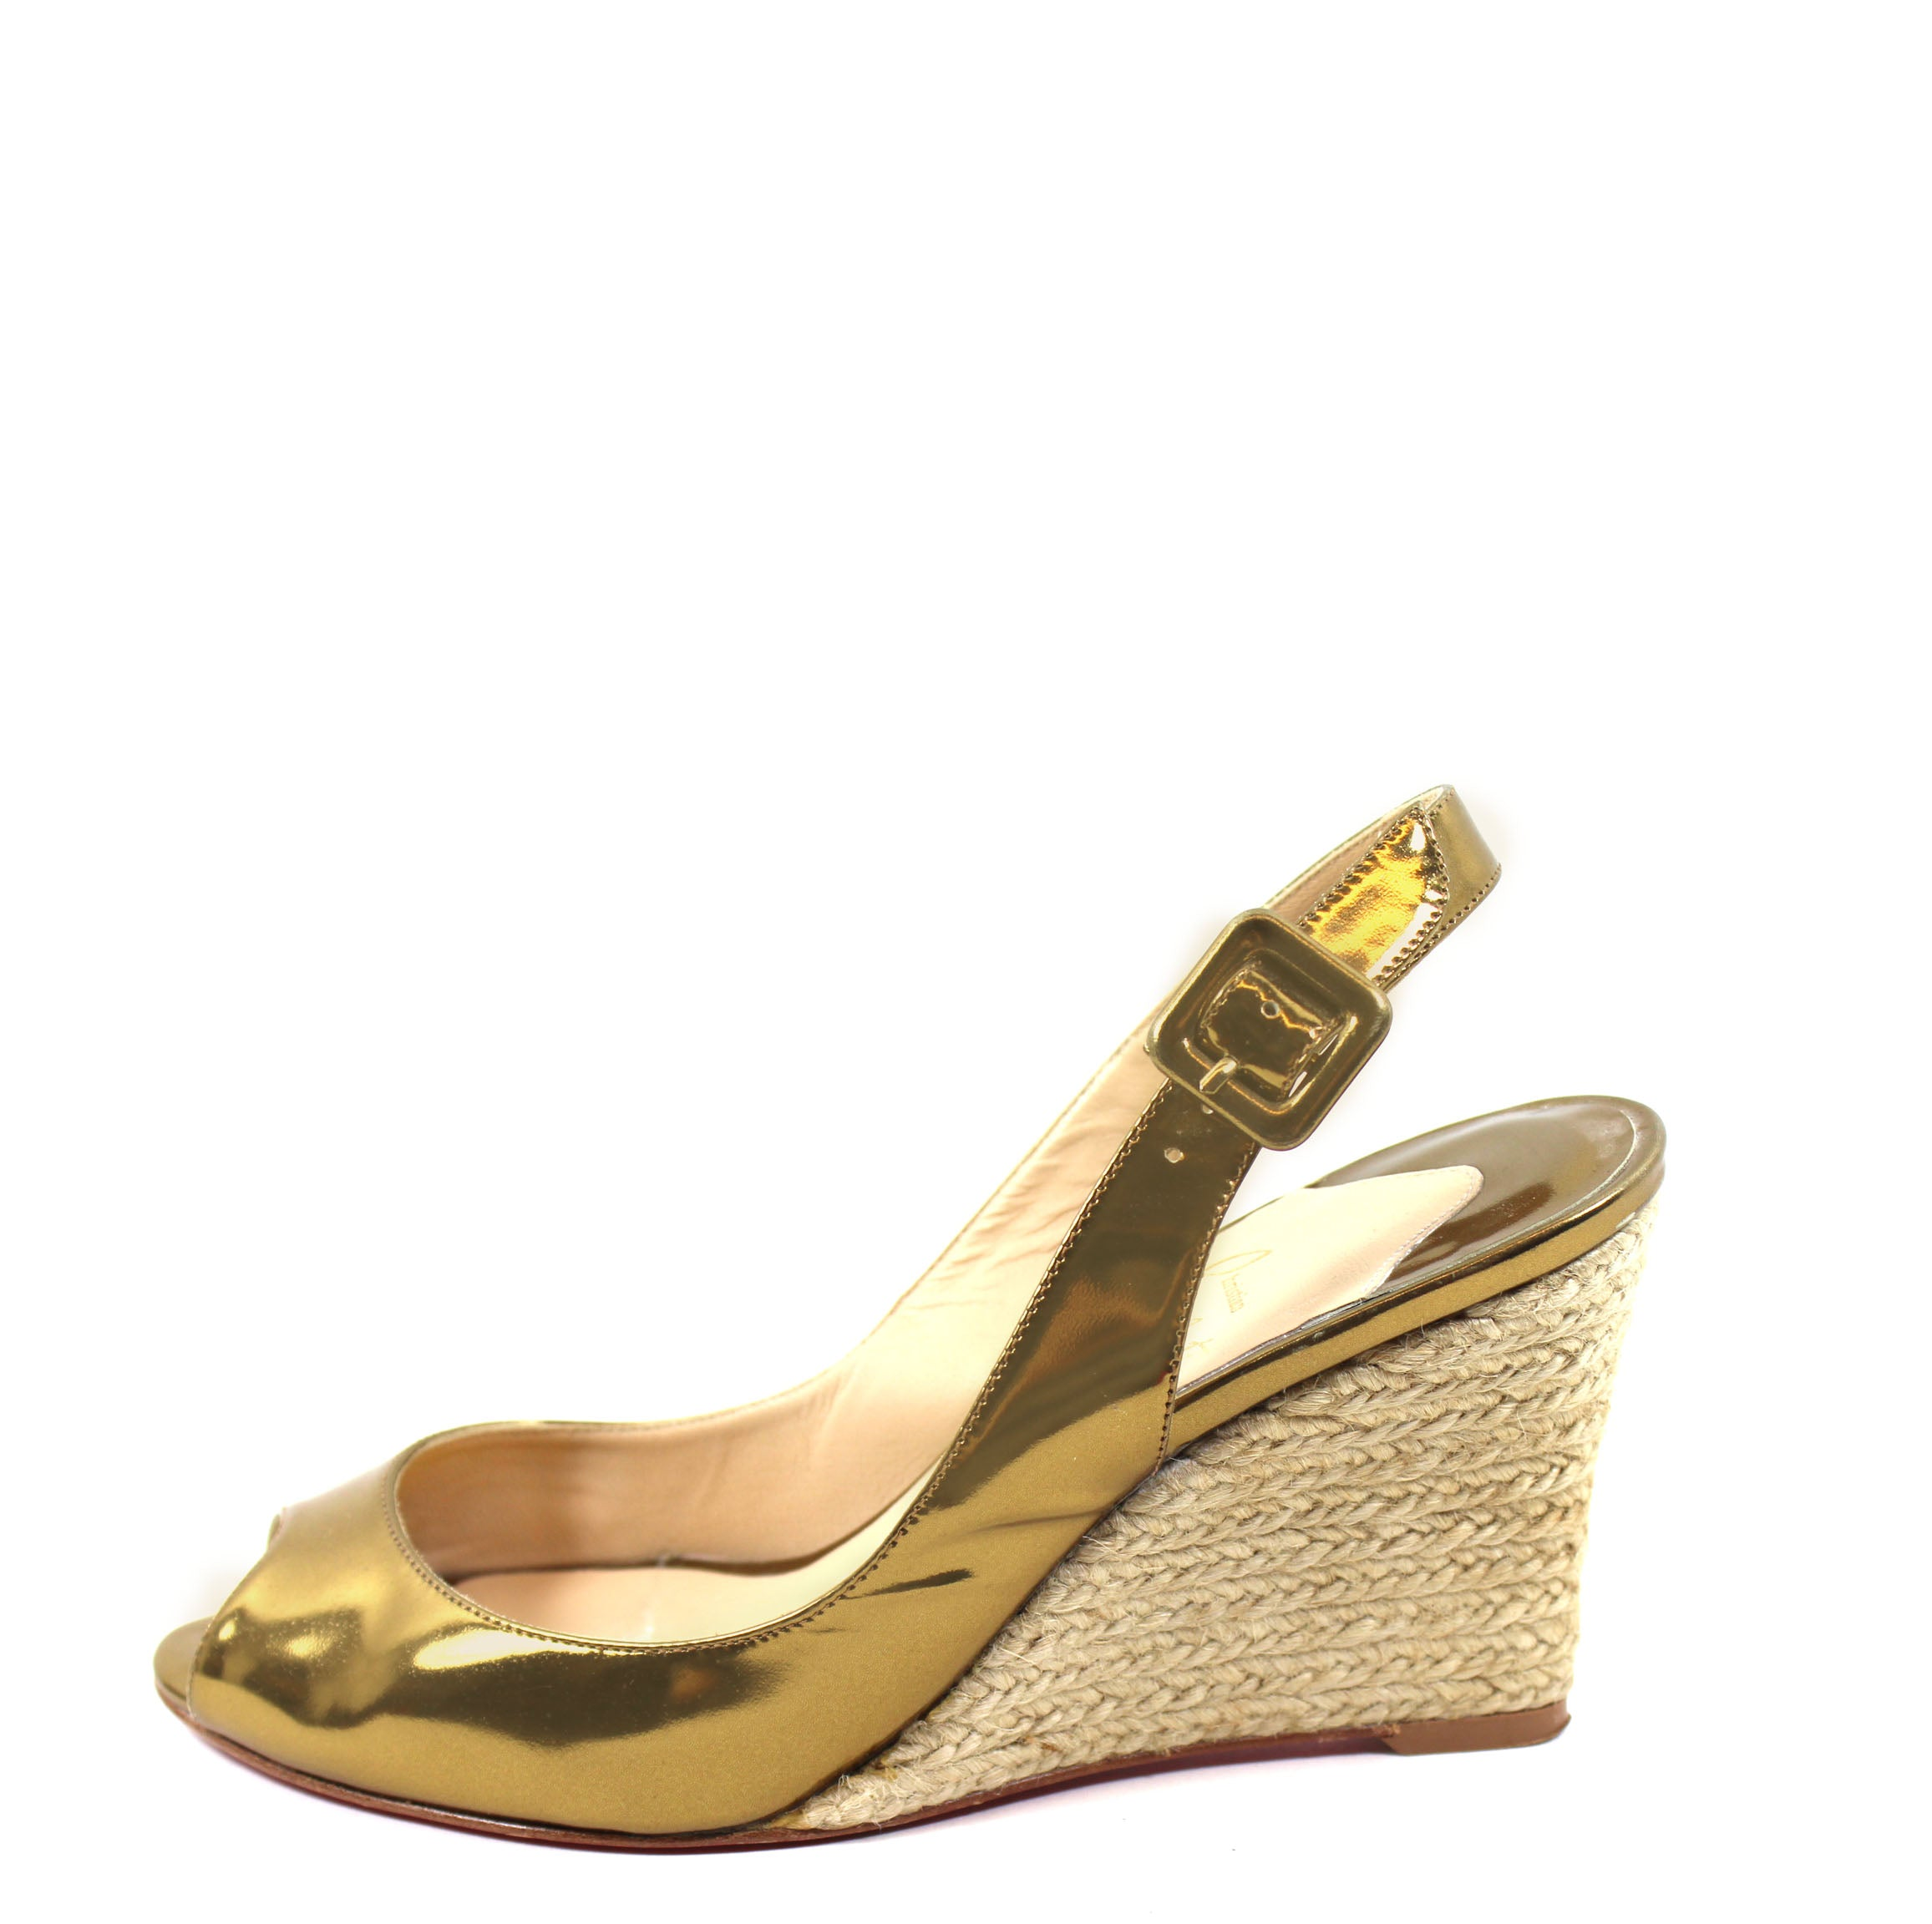 6ba29aec36dc Christian Louboutin Gold Patent Leather Espadrille Wedges (Size 37) –  Encore Resale.com